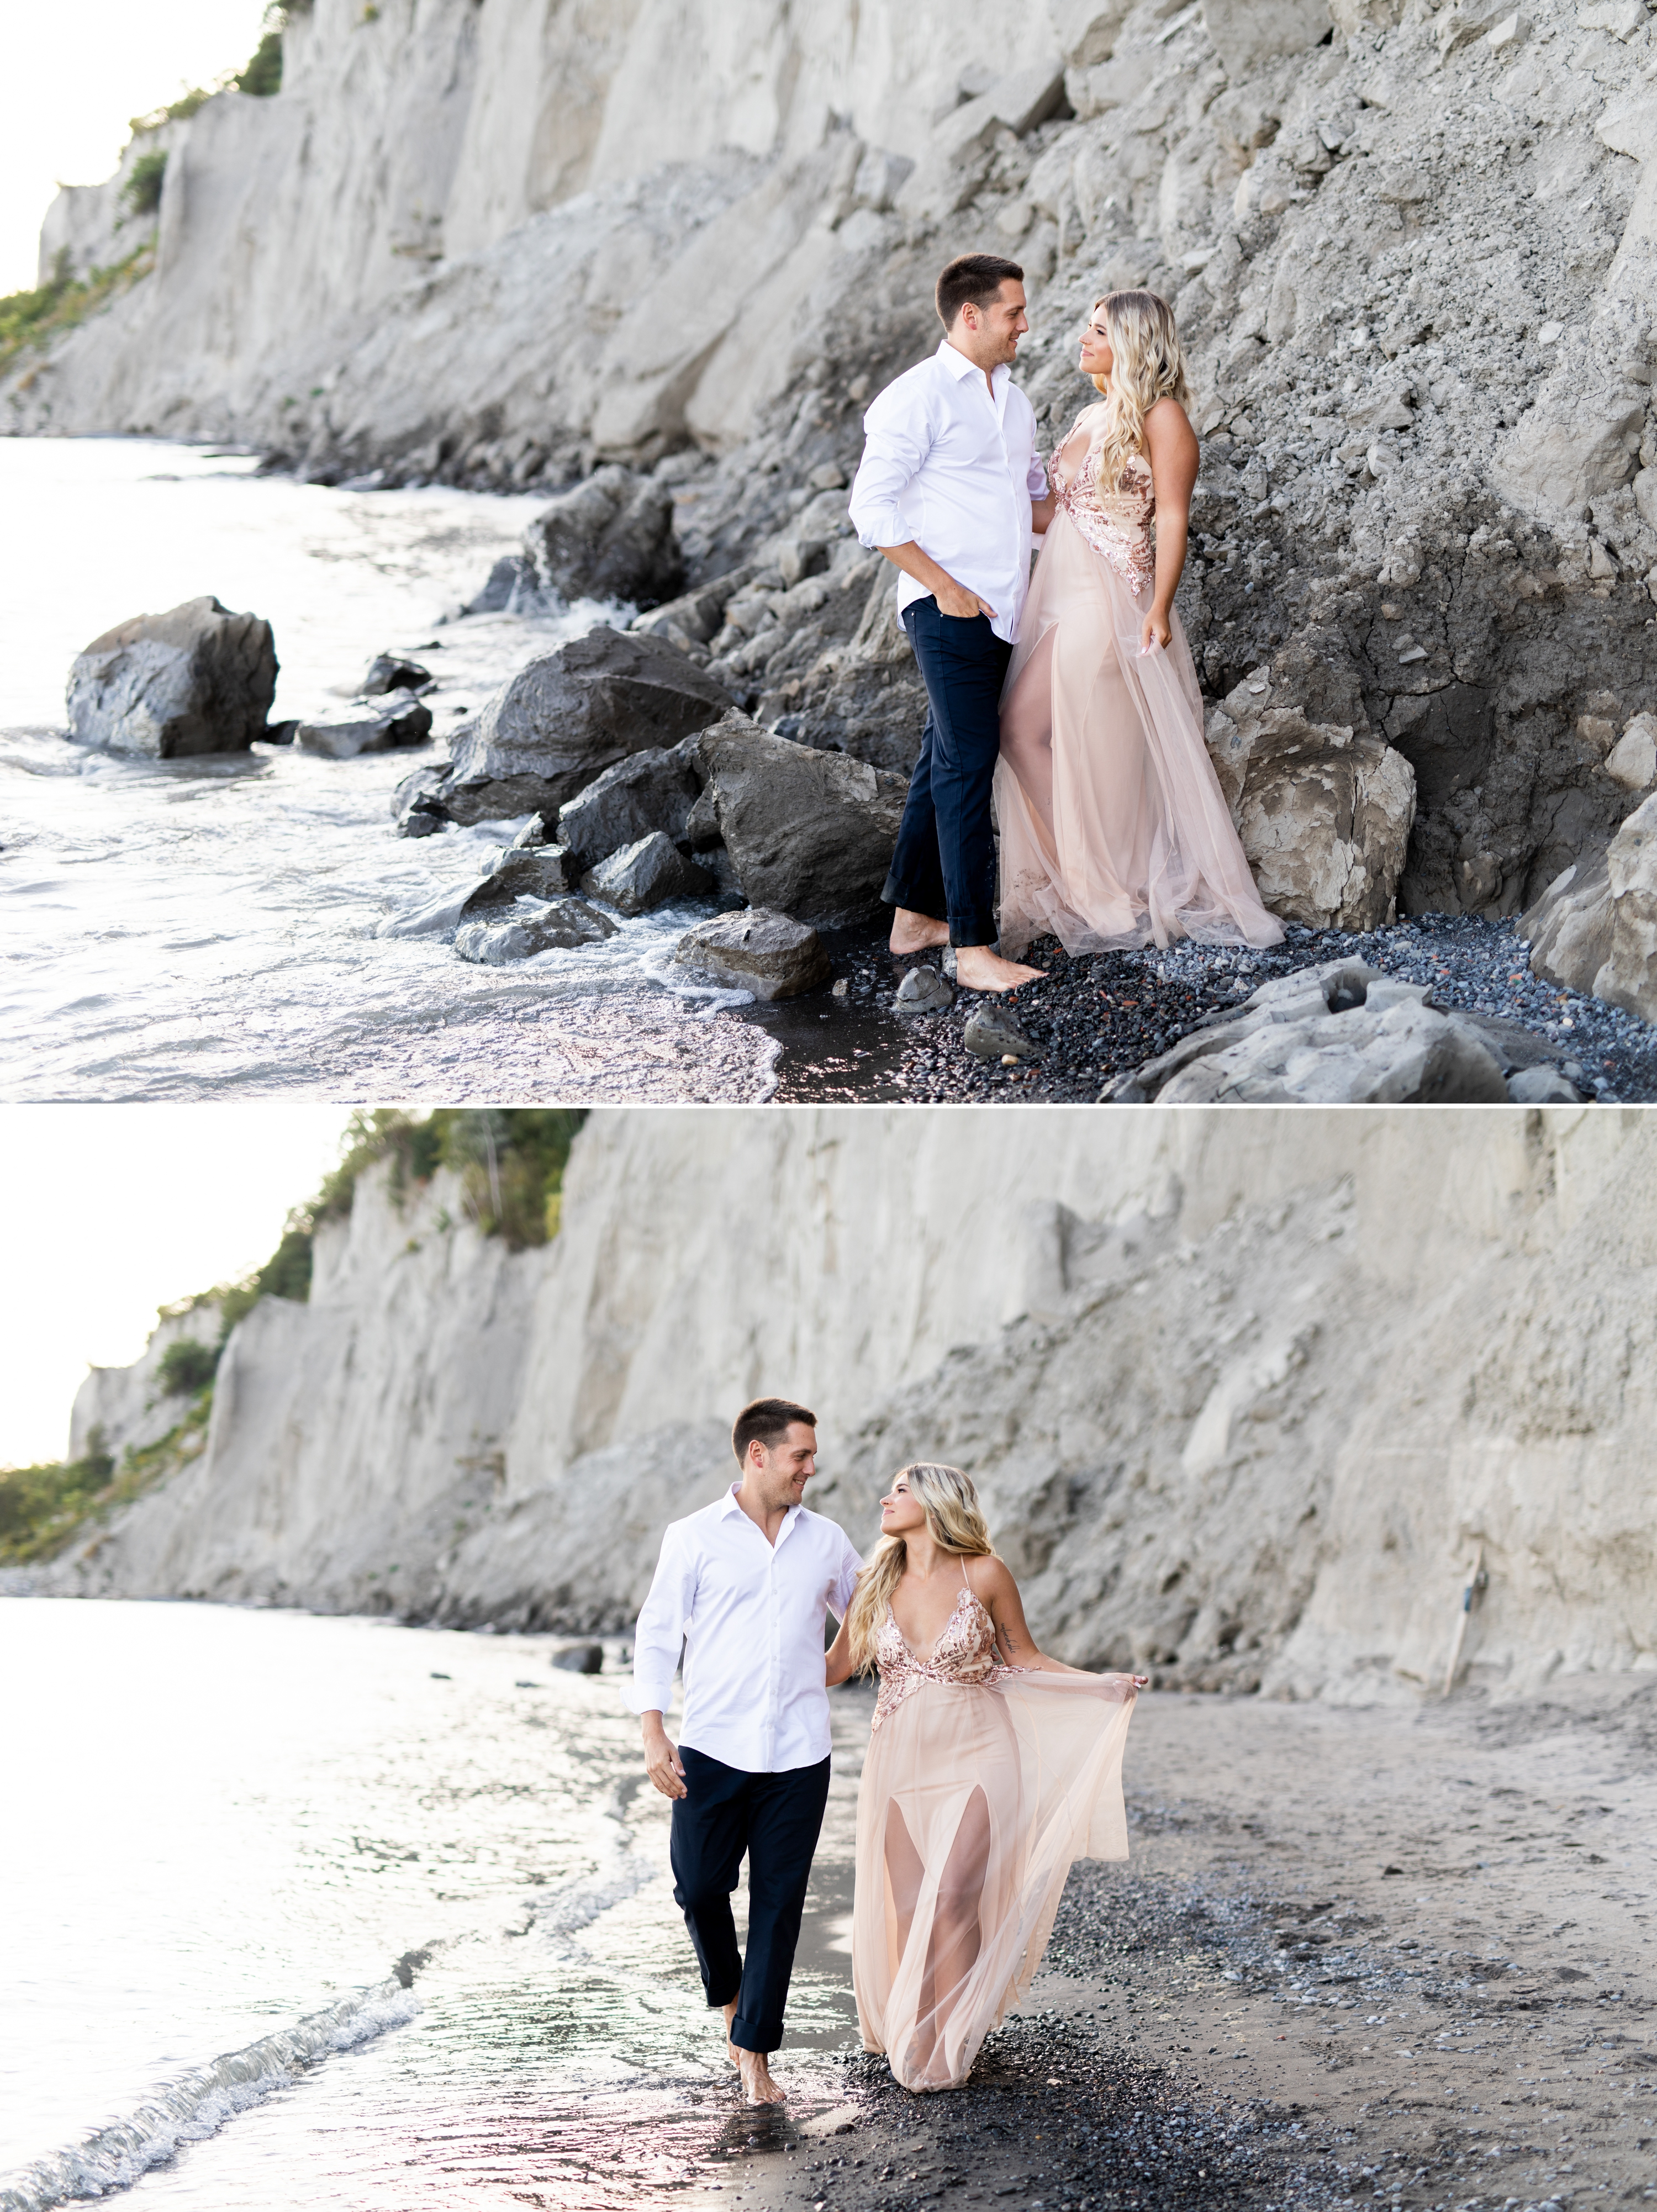 Zsuzsi Pal Photography, Guild Inn, Scarborough Bluffs, Engagement, Toronto, Beach, Rocks, Cliff